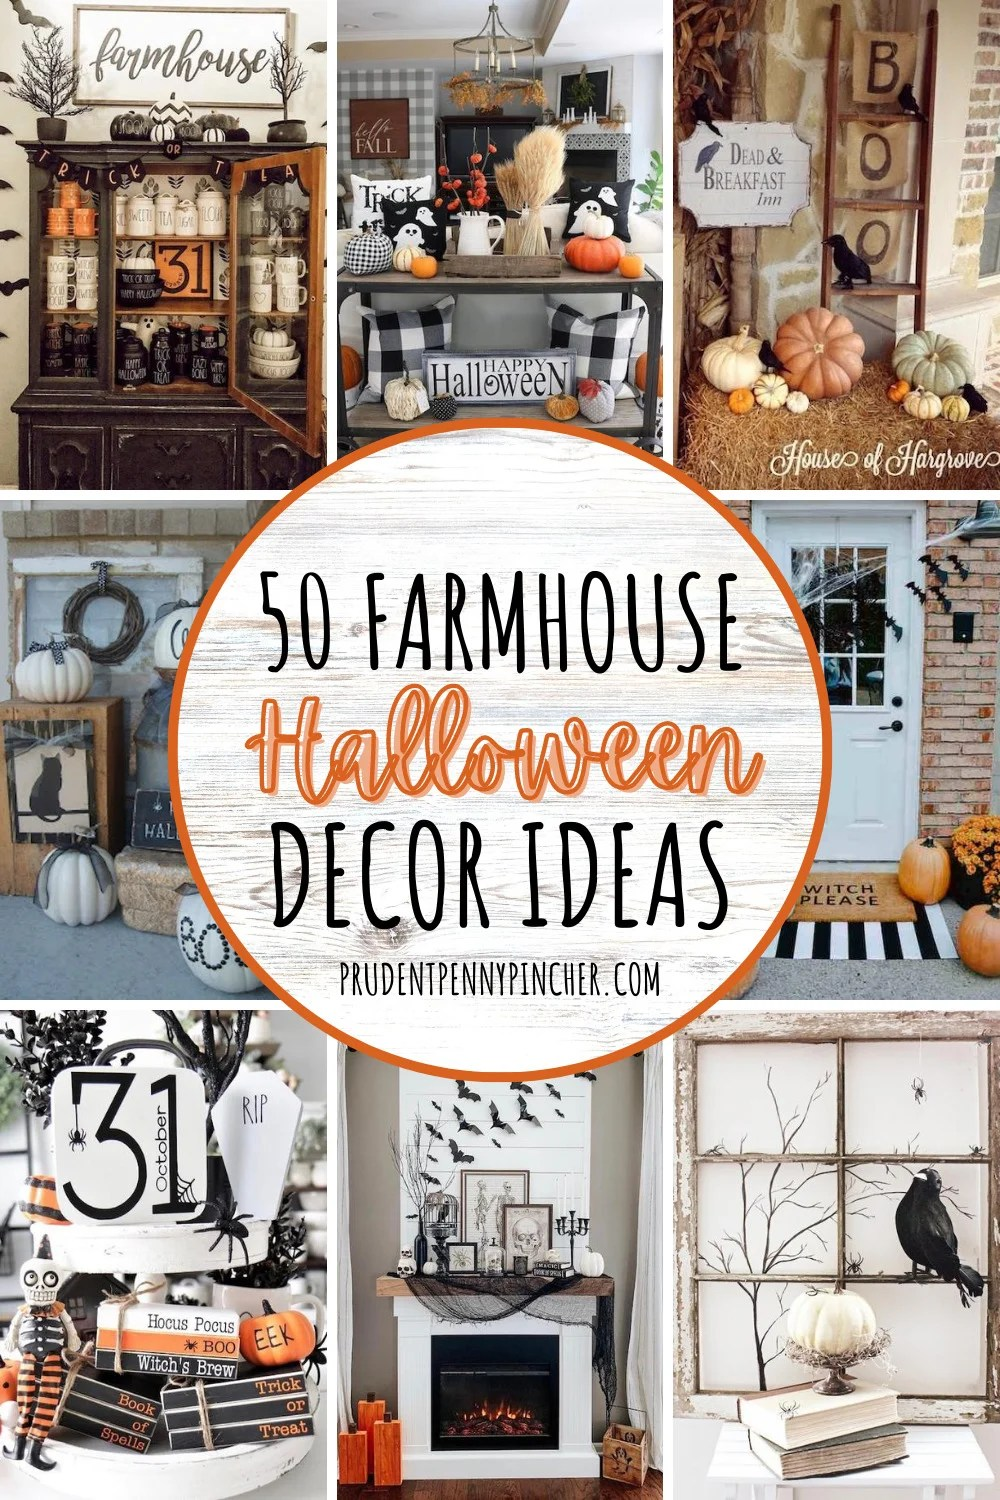 50 Farmhouse Halloween Decorations Prudent Penny Pincher